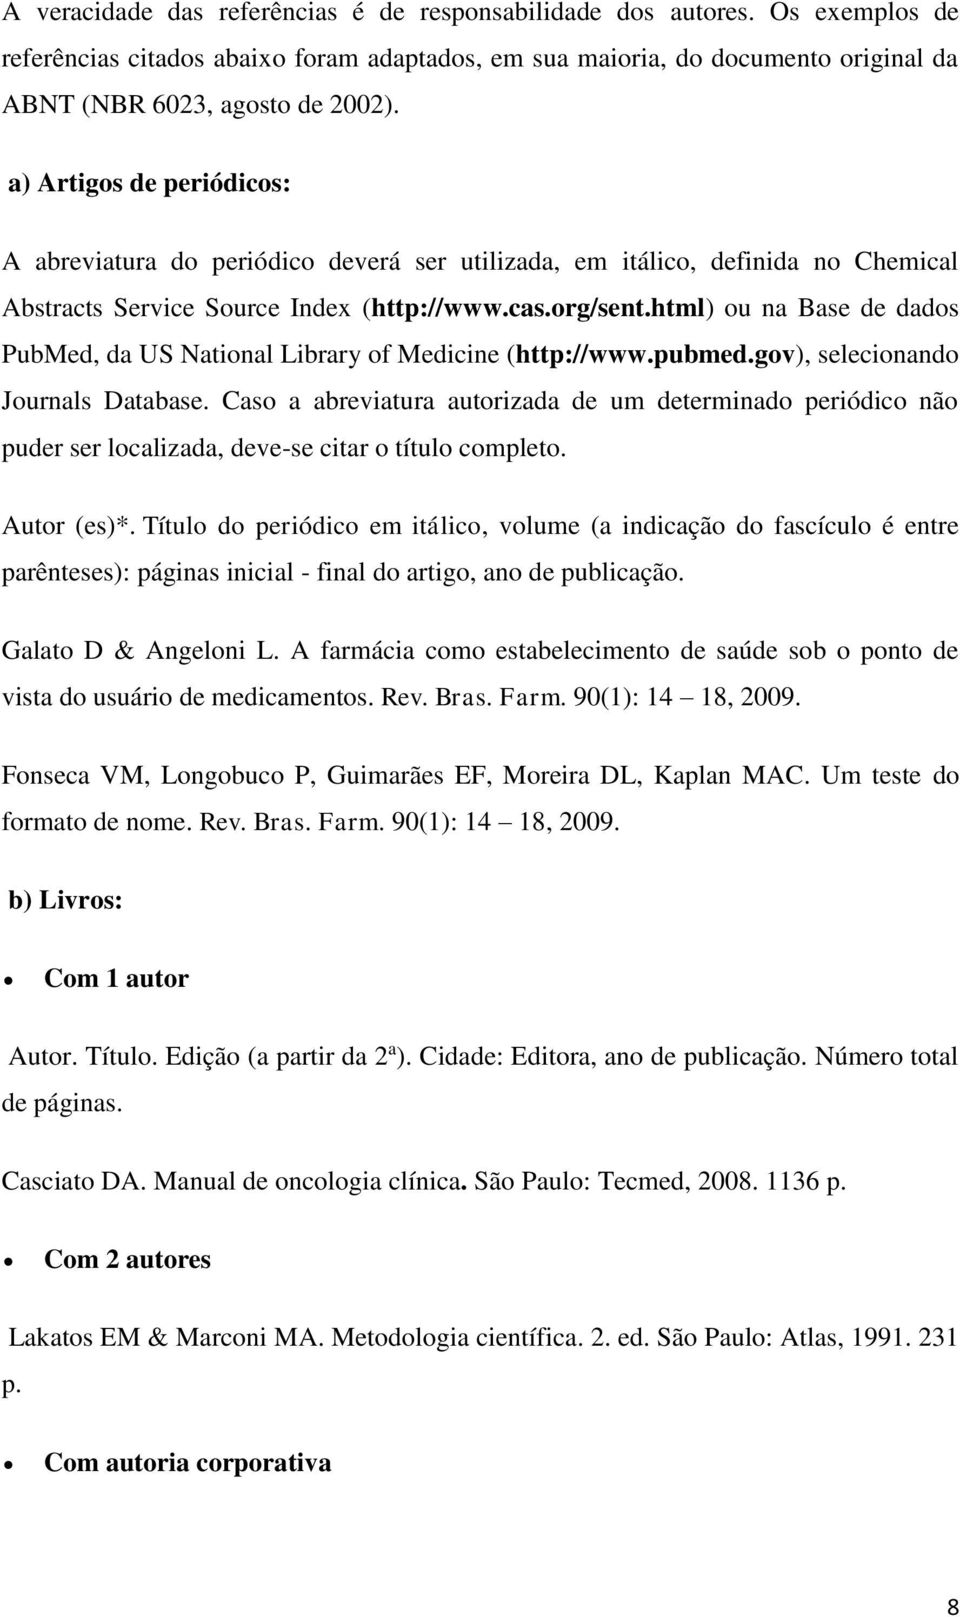 html) ou na Base de dados PubMed, da US National Library of Medicine (http://www.pubmed.gov), selecionando Journals Database.